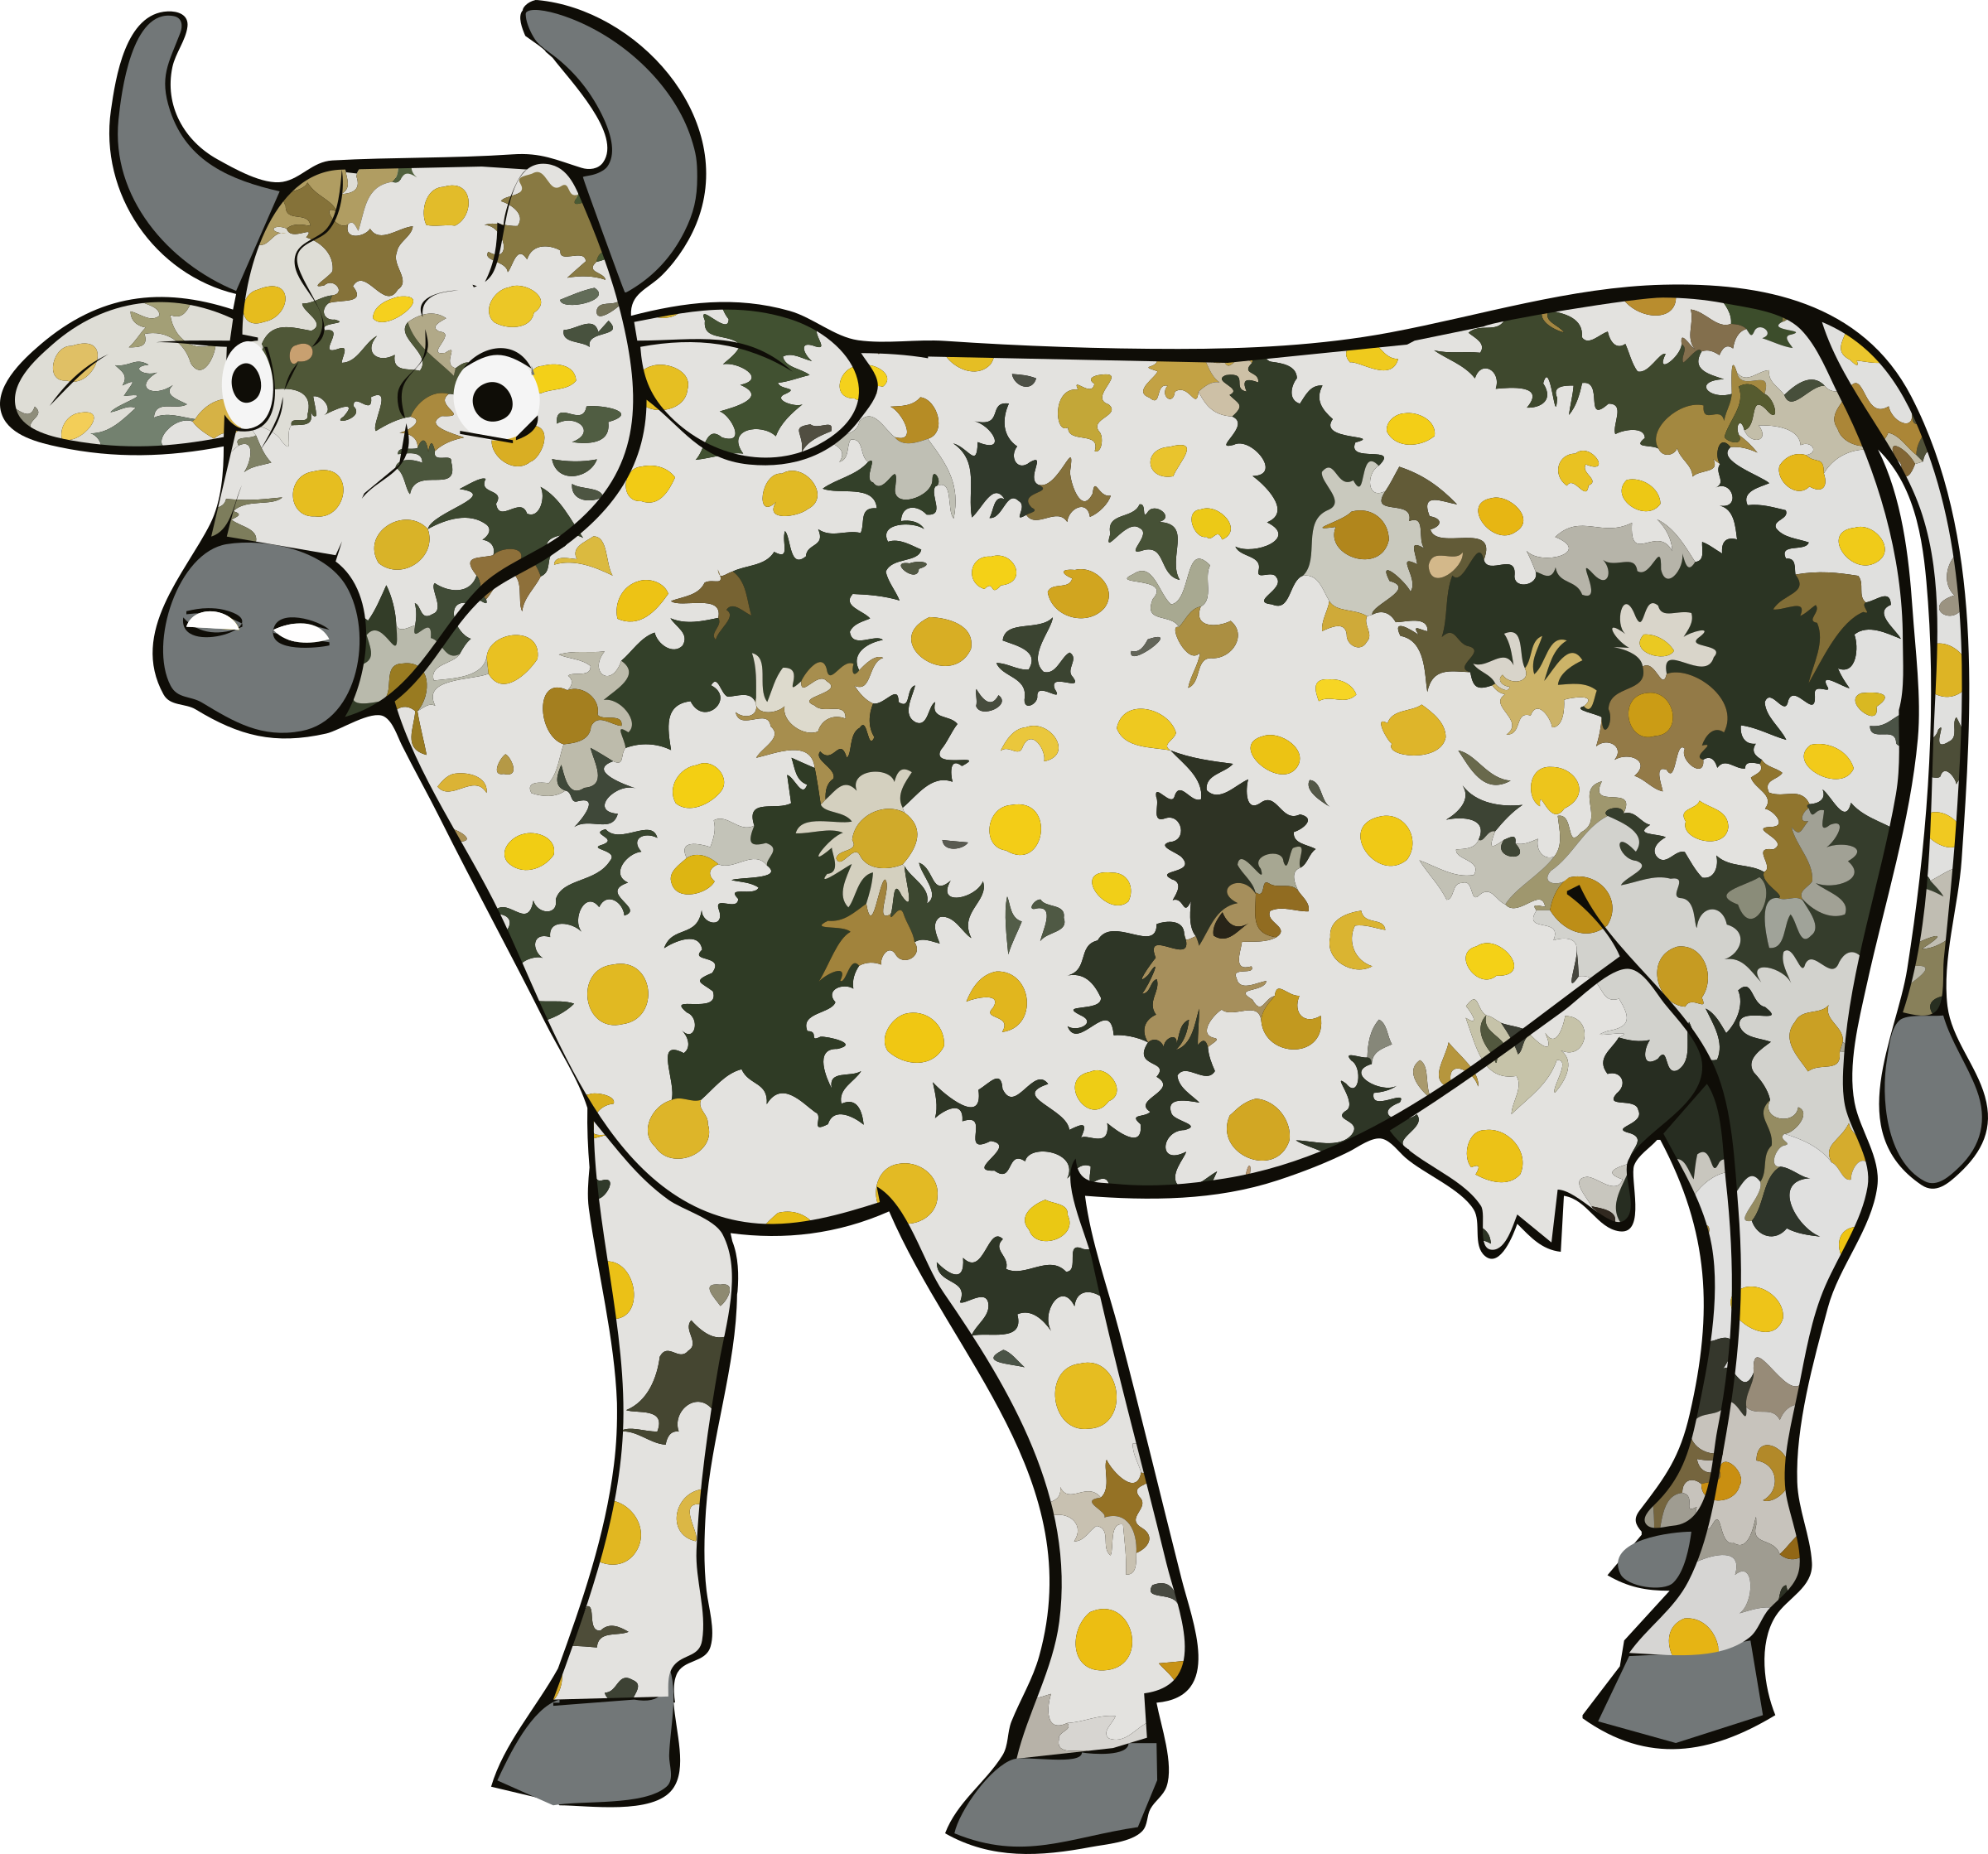 Daisy the cow by Firkin